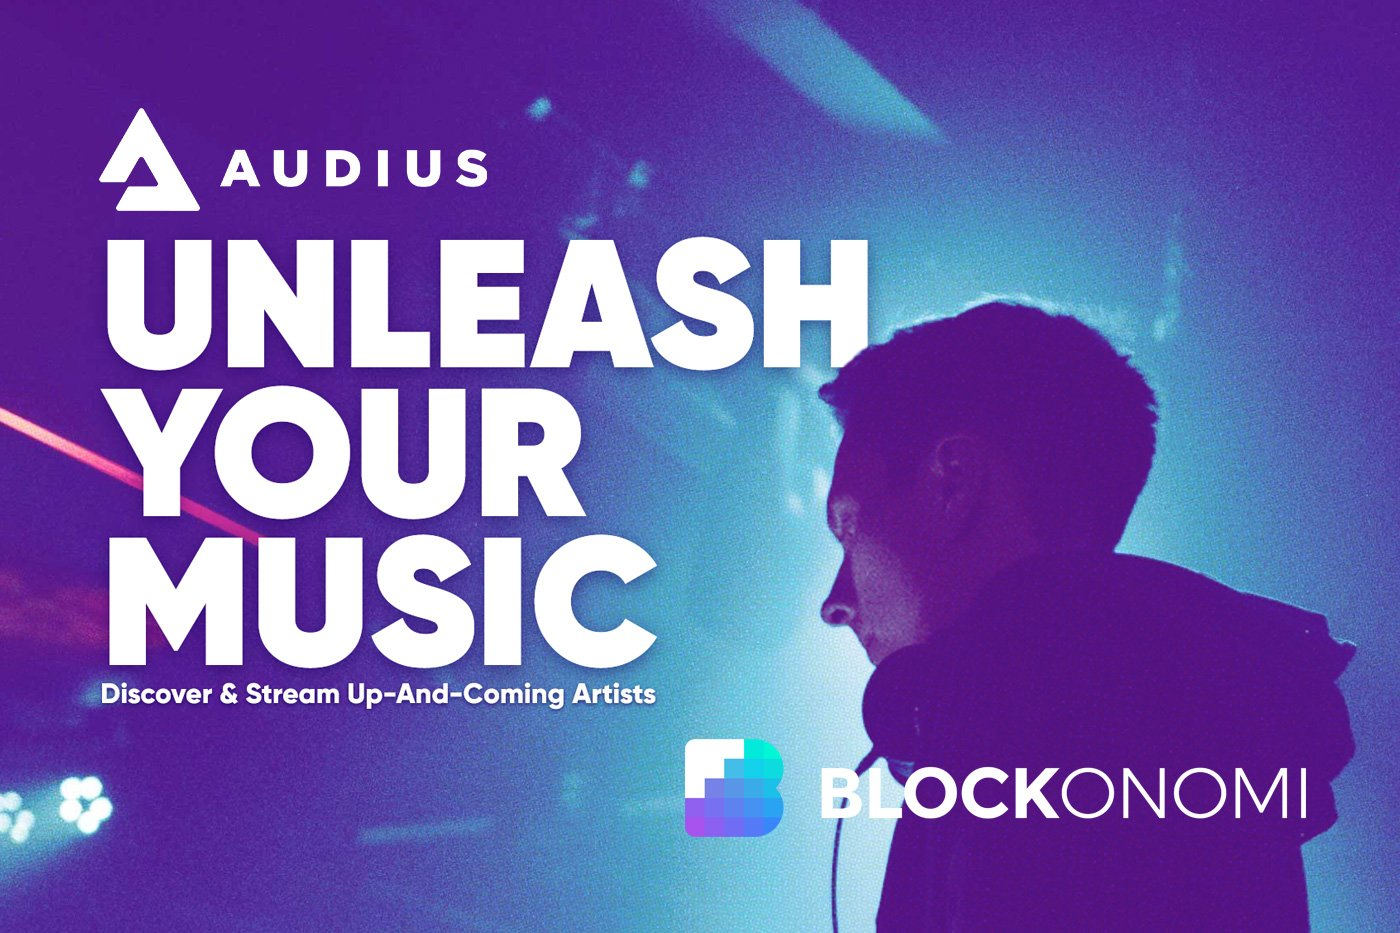 Let's Talk Audius: The Ethereum Music App Putting Streaming in Artists' Hands